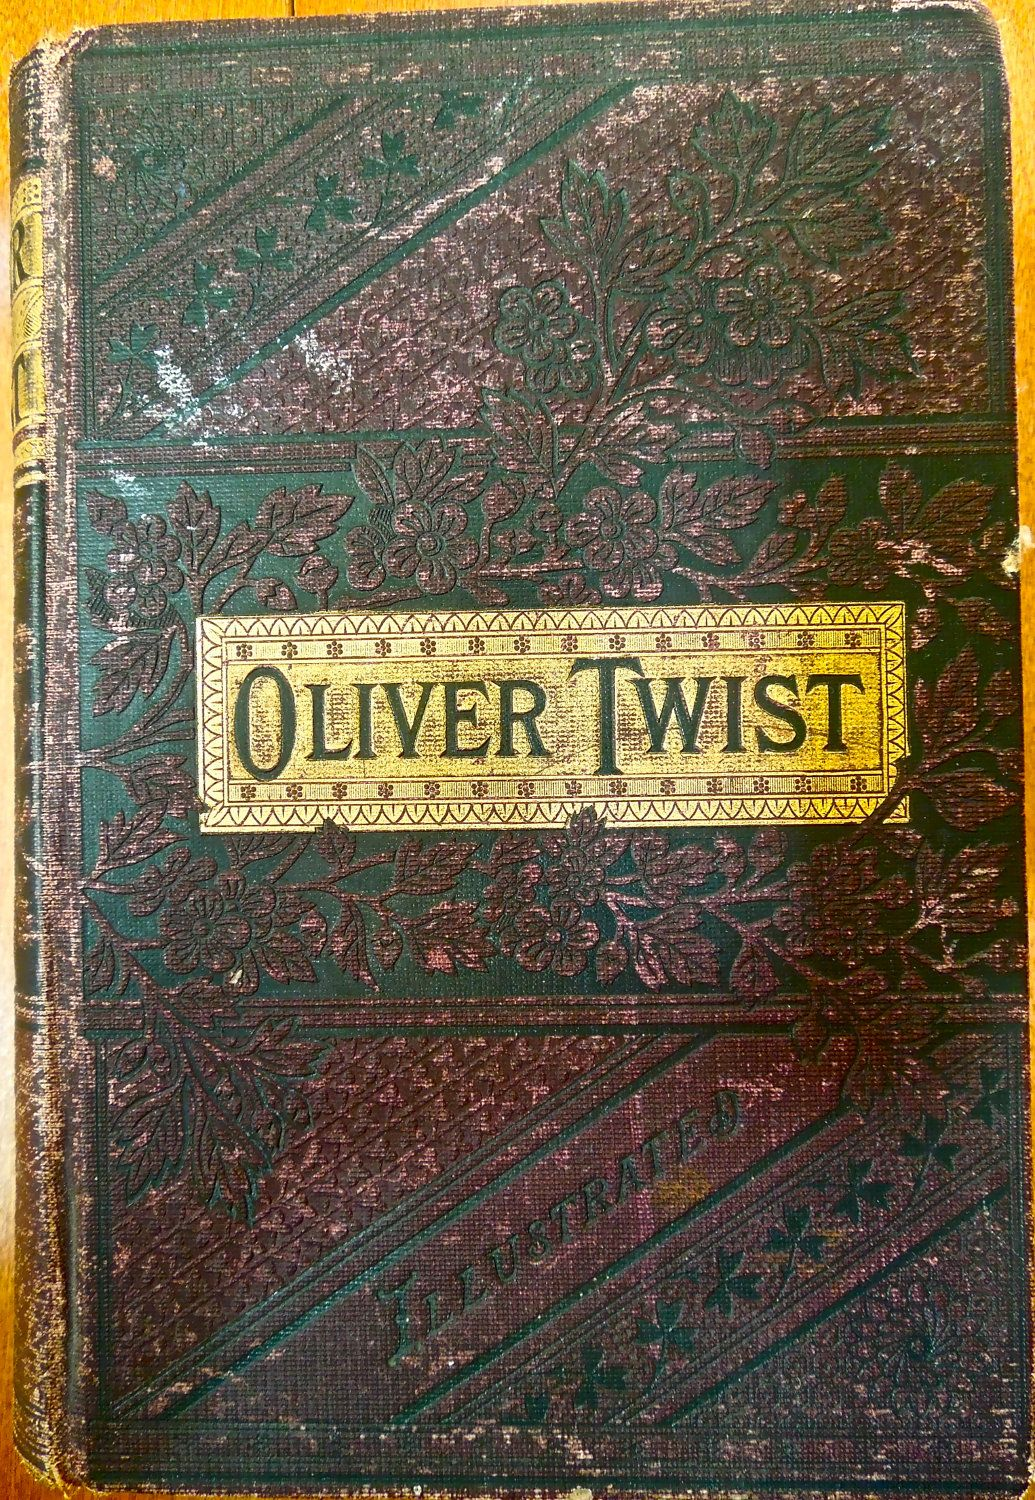 book analysis of oliver twist An analysis of oliver twist and oliver angela marie priley (bio) for this paper, i have chosen to write on the book oliver twist , by charles dickens, and the movie musical oliver .